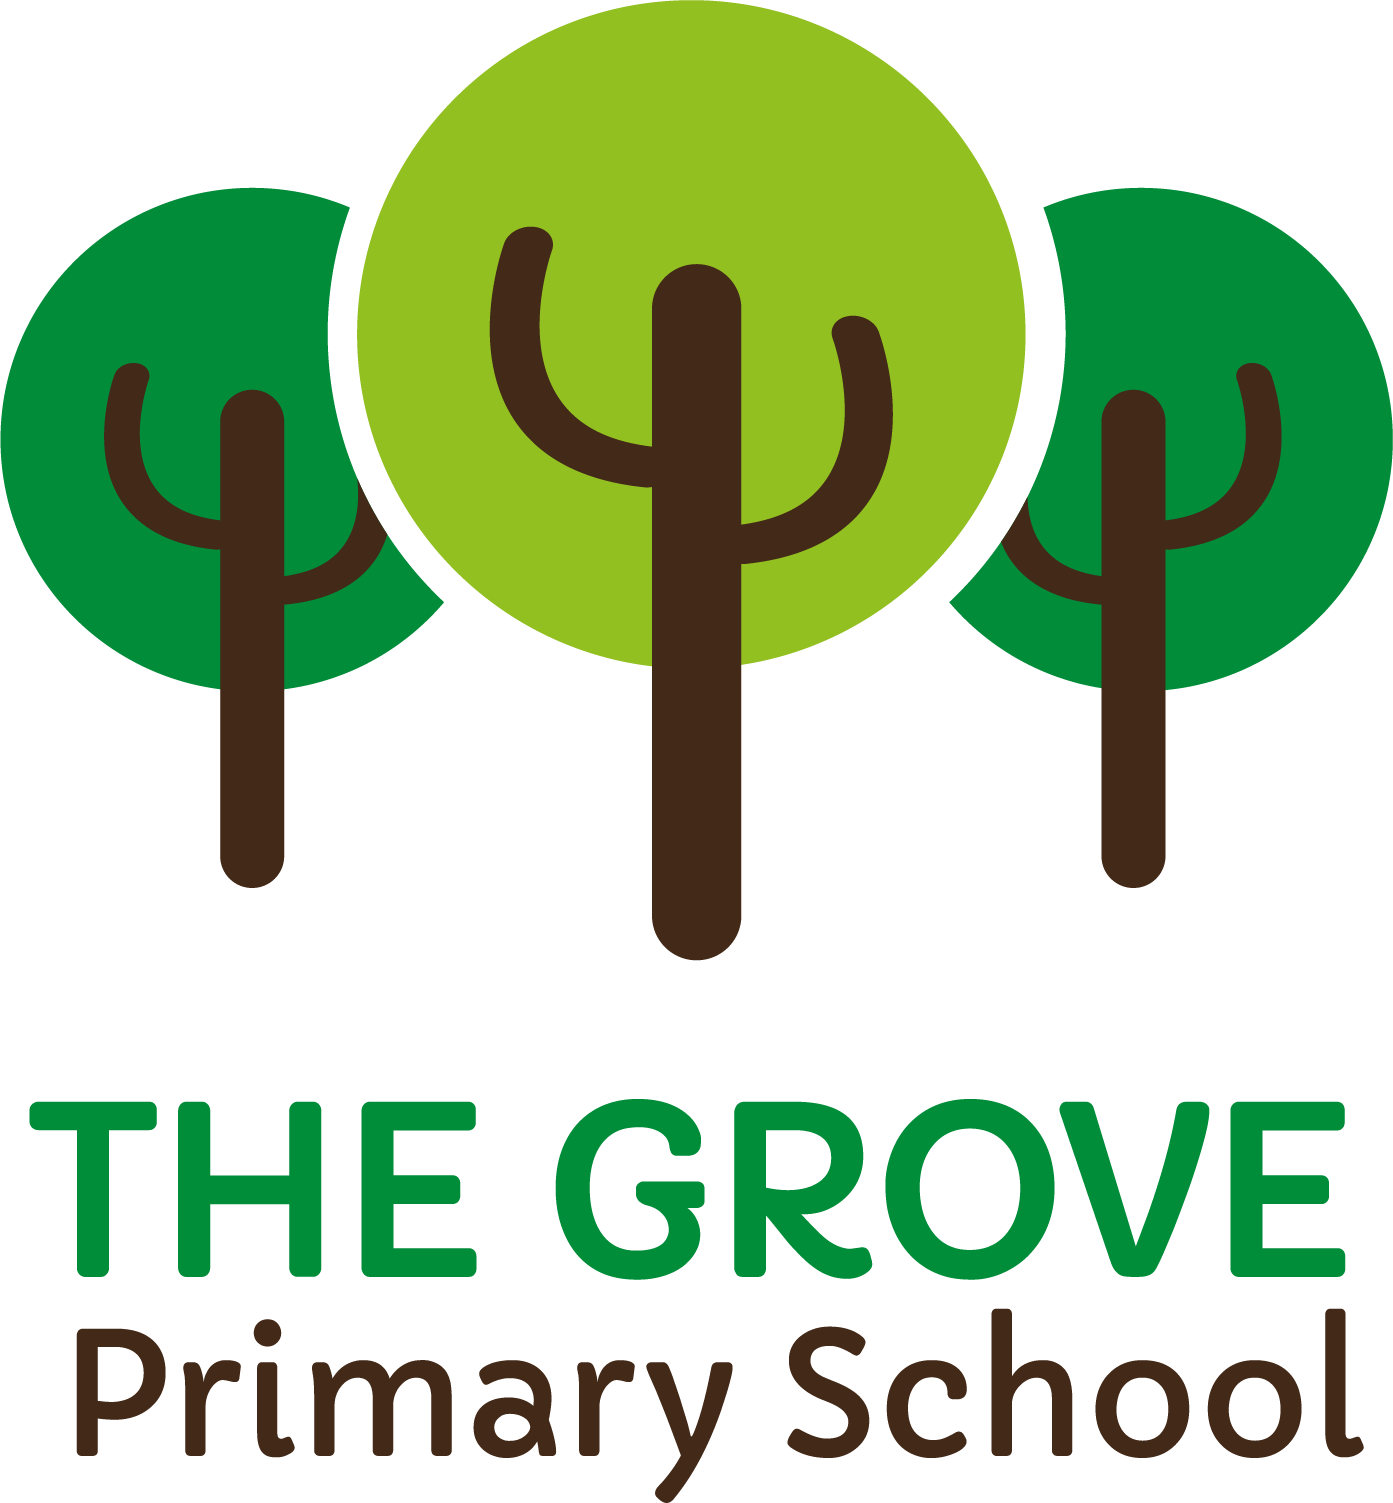 The Grove Primary School